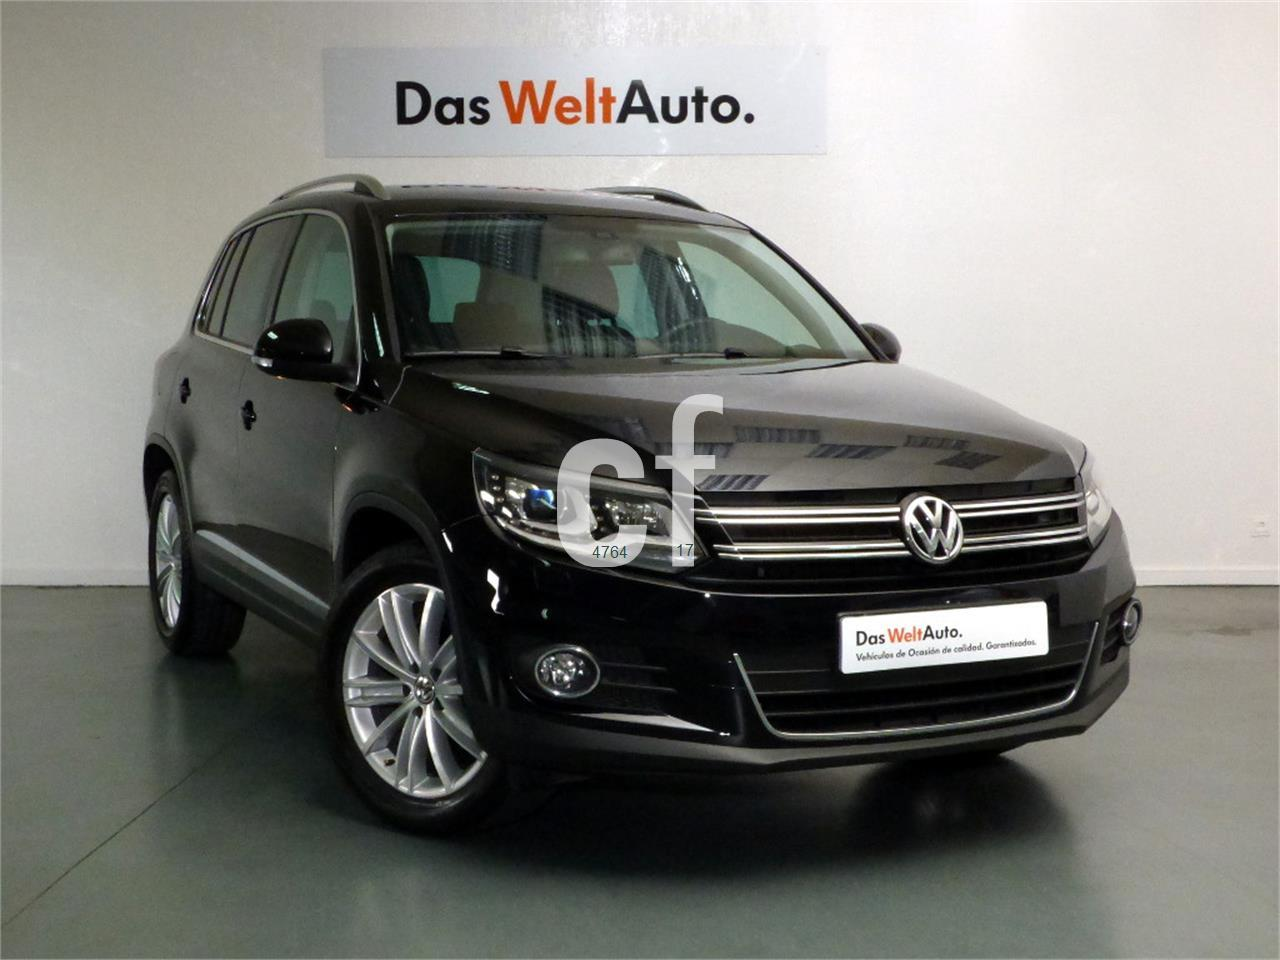 tiguan 2015 prix exclusif volkswagen tiguan 2015 trois silhouettes au nouveau tiguan taill. Black Bedroom Furniture Sets. Home Design Ideas